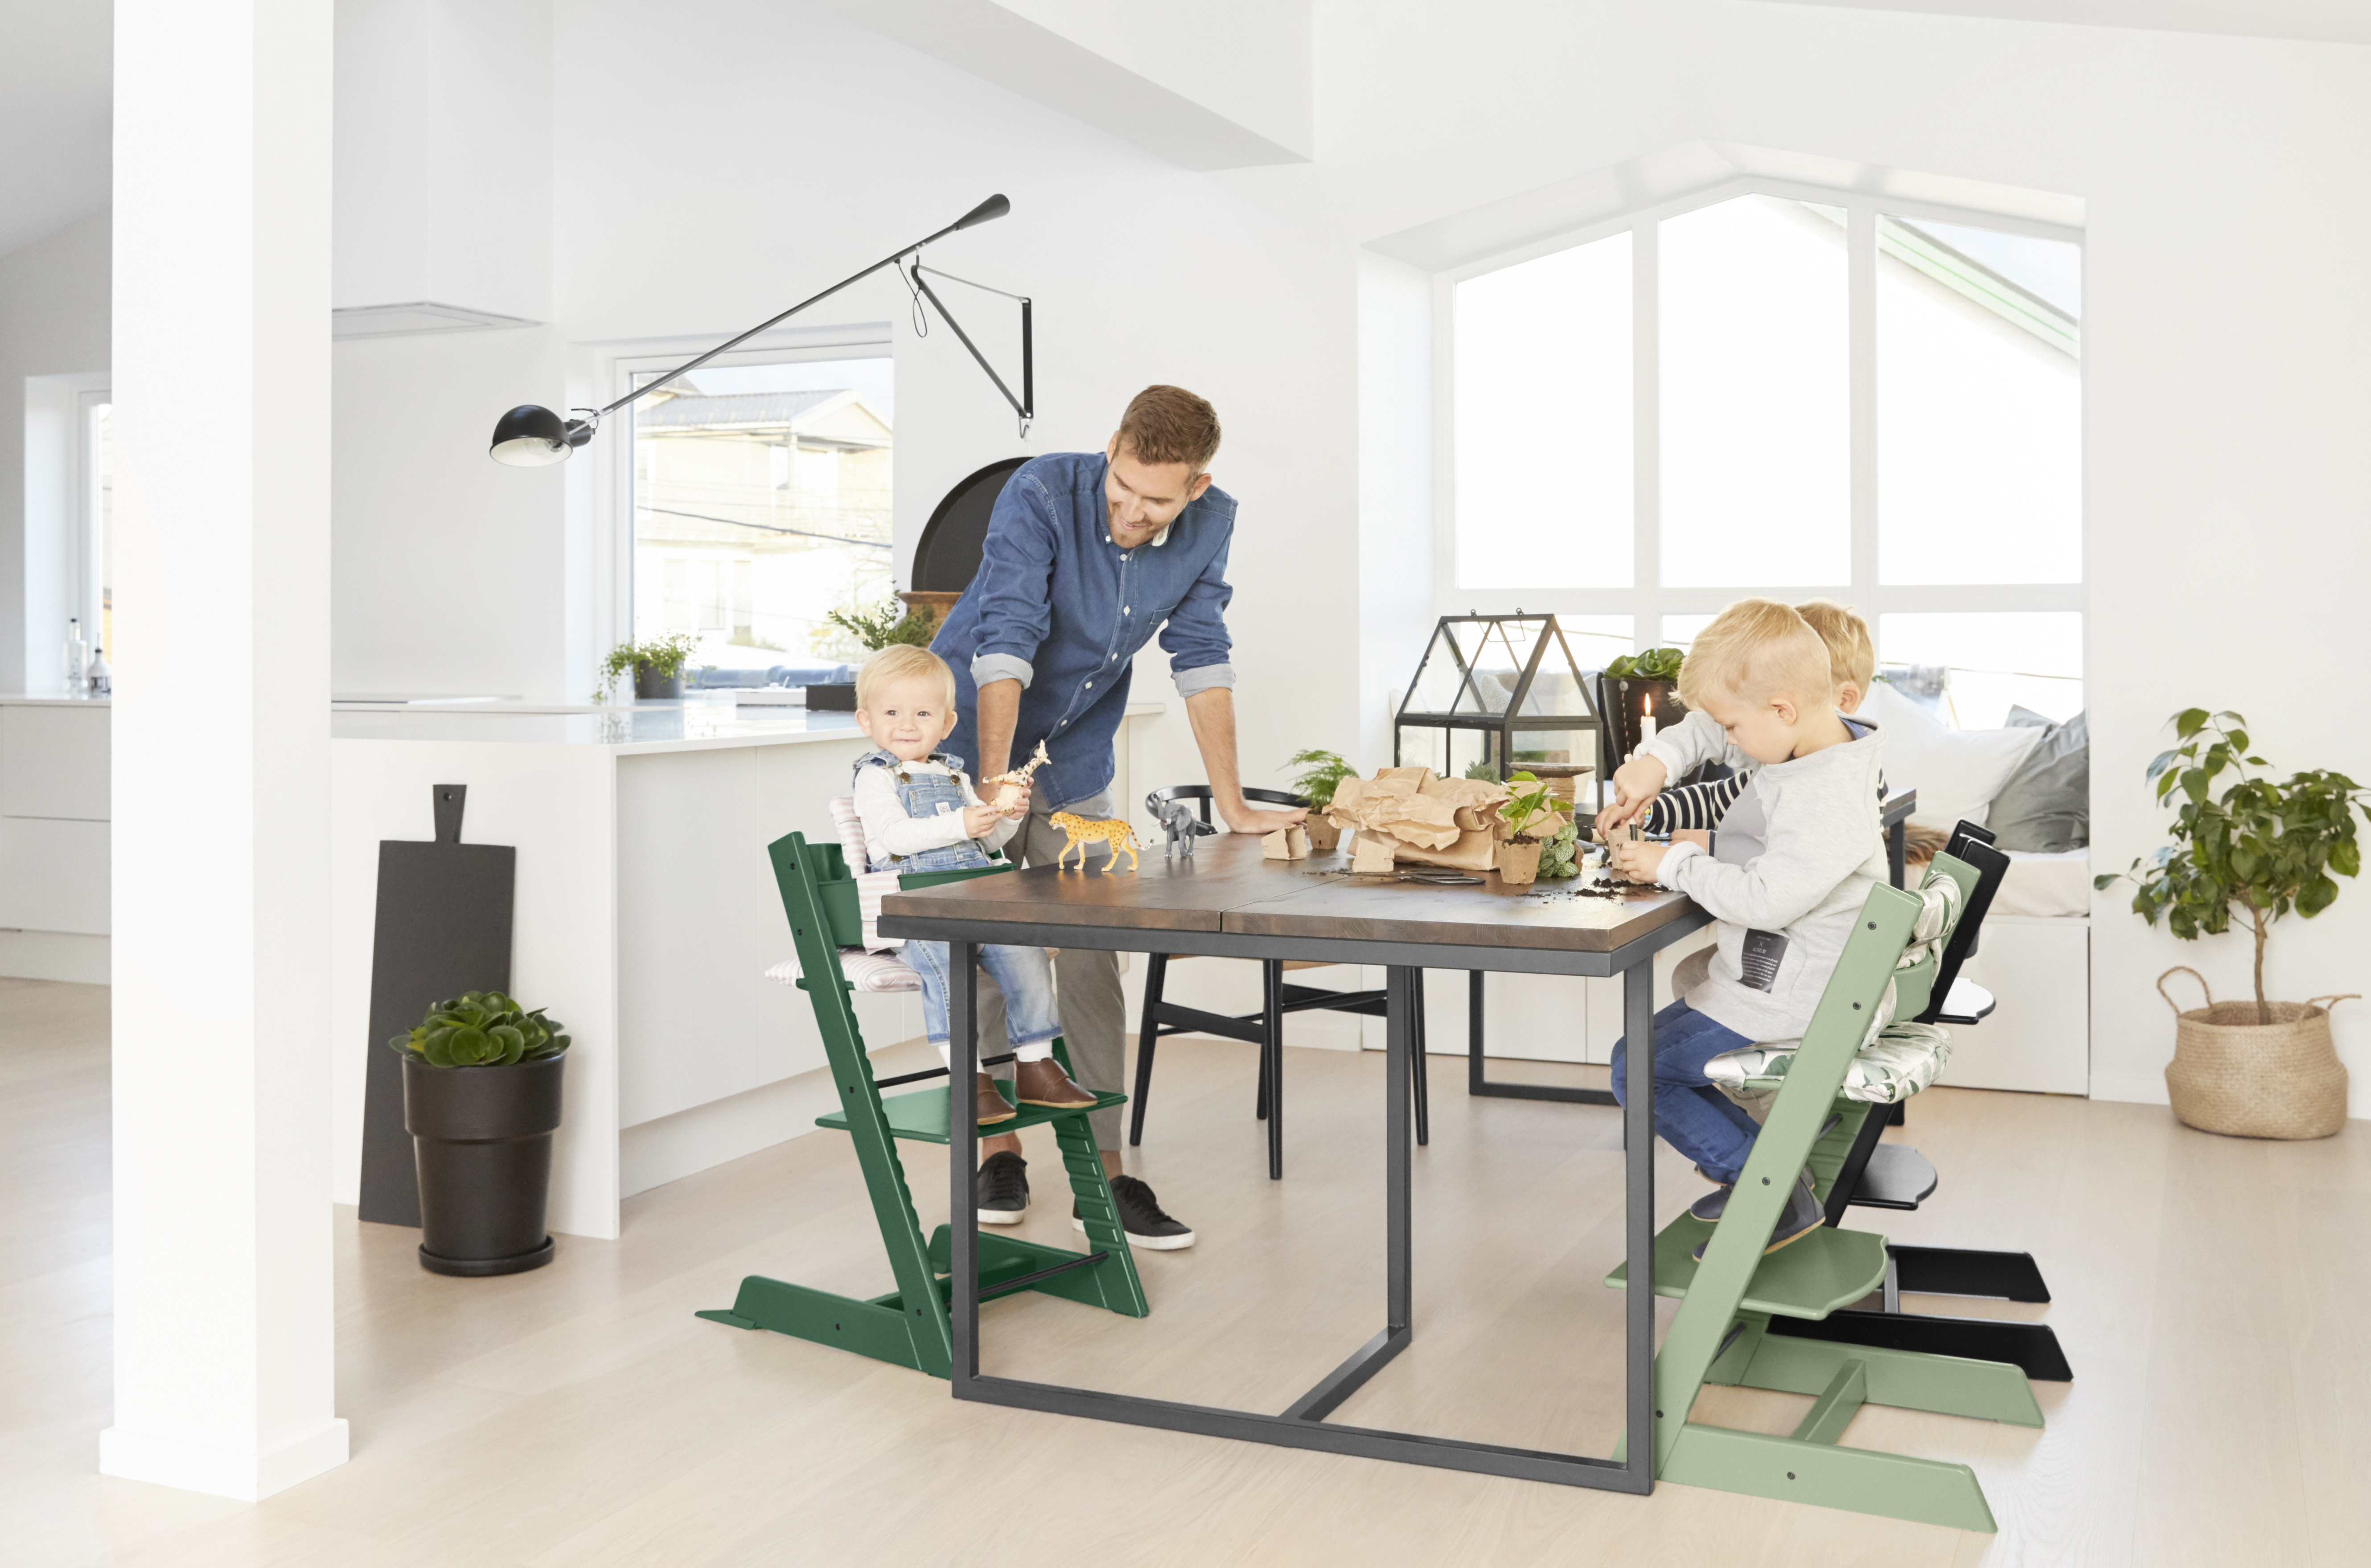 trona bebe tripp trapp stokke new colors kids abitare kids barruguet. Black Bedroom Furniture Sets. Home Design Ideas